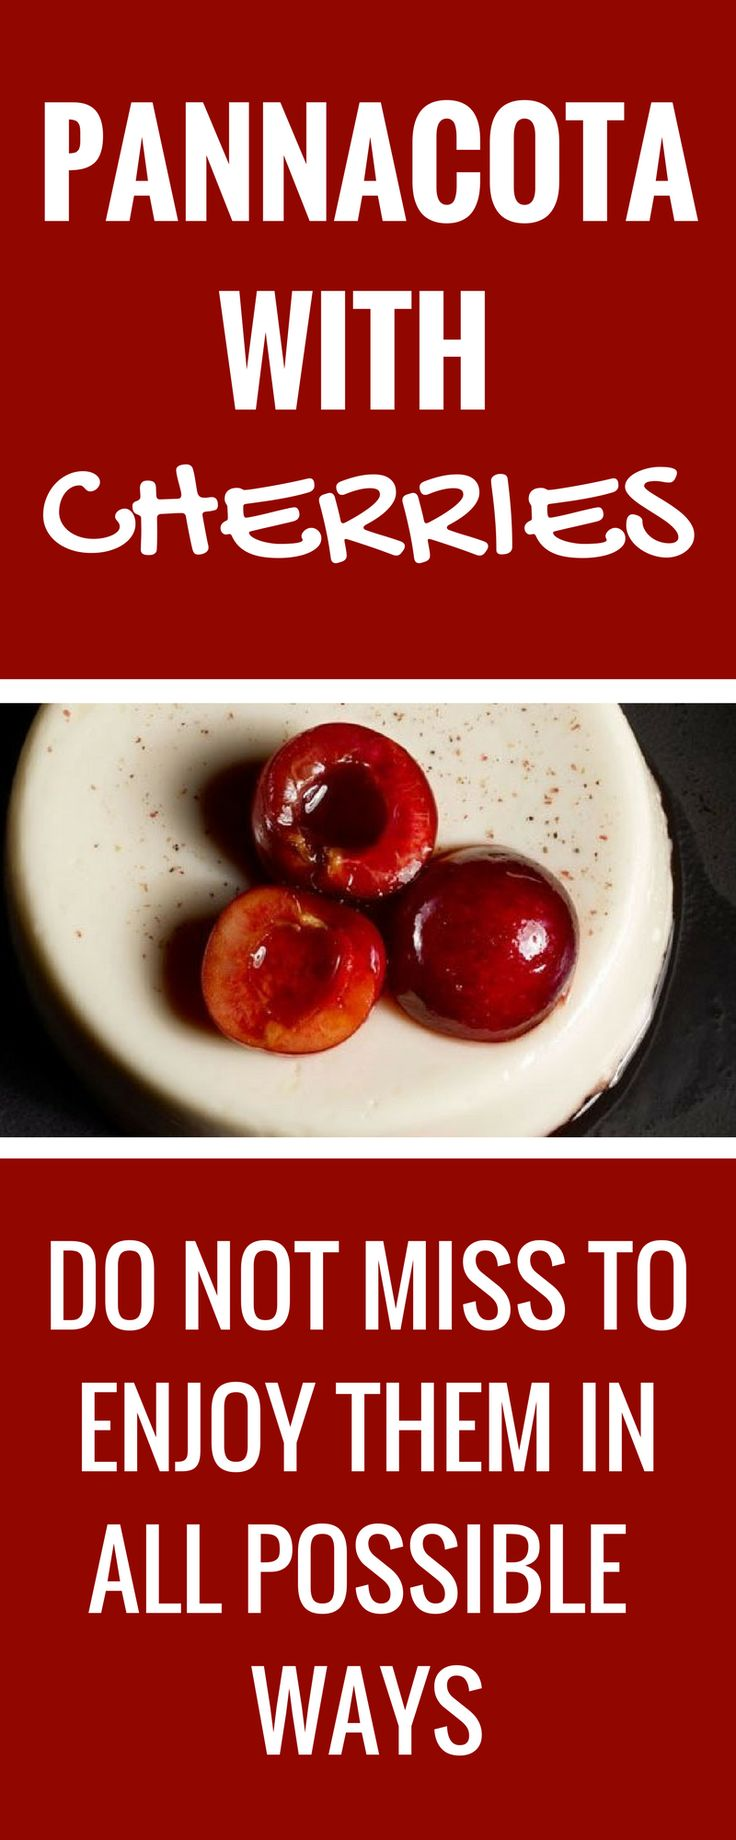 Pannacota with cherries, do not miss to enjoy them in all possible ways.